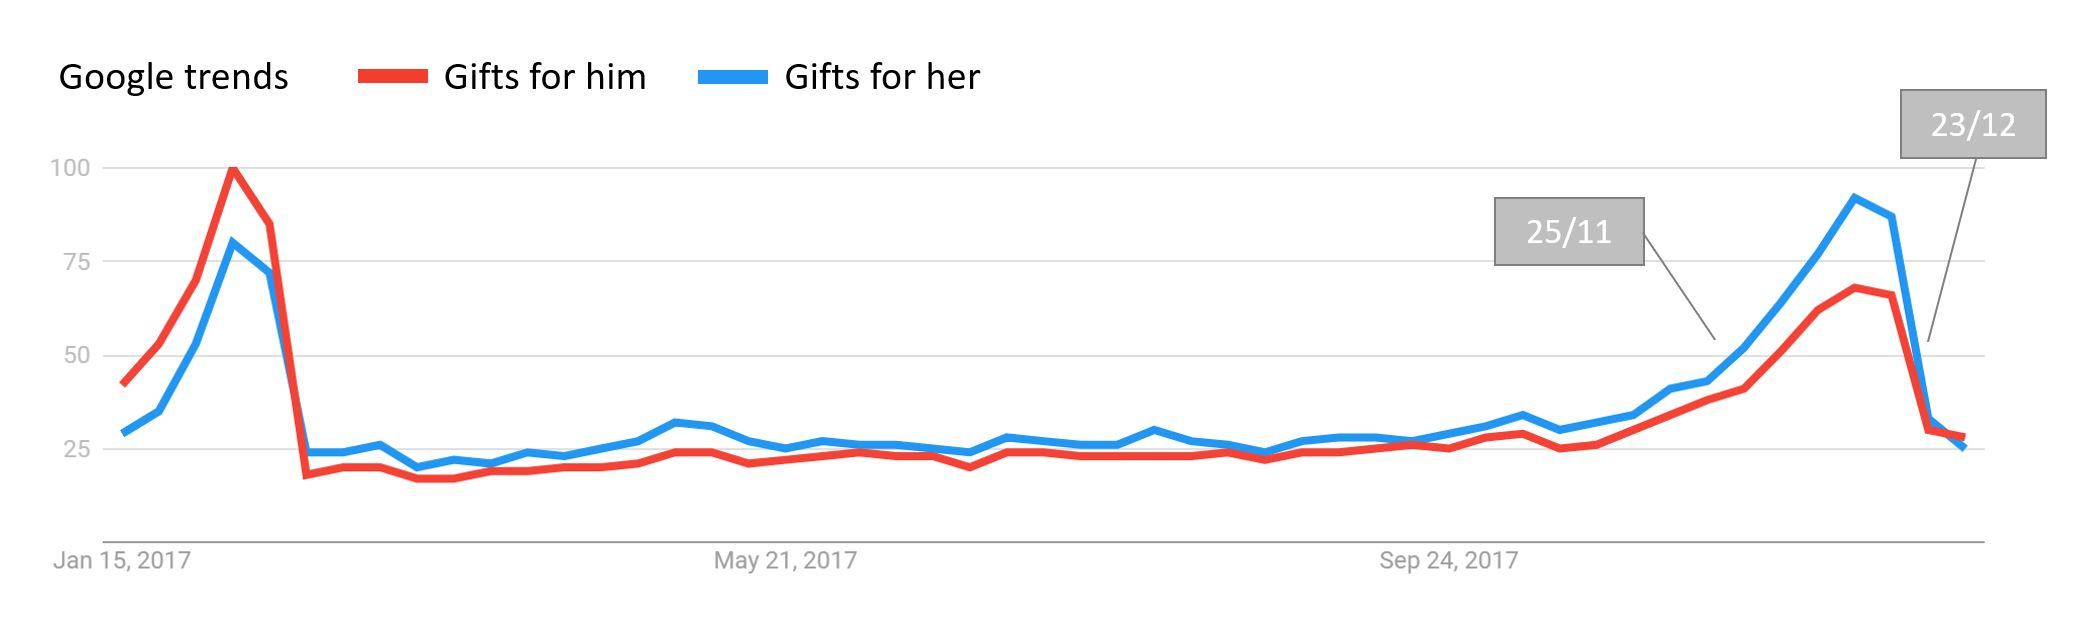 Luxury newsletters for Christmas: Searches for gifts for him/her